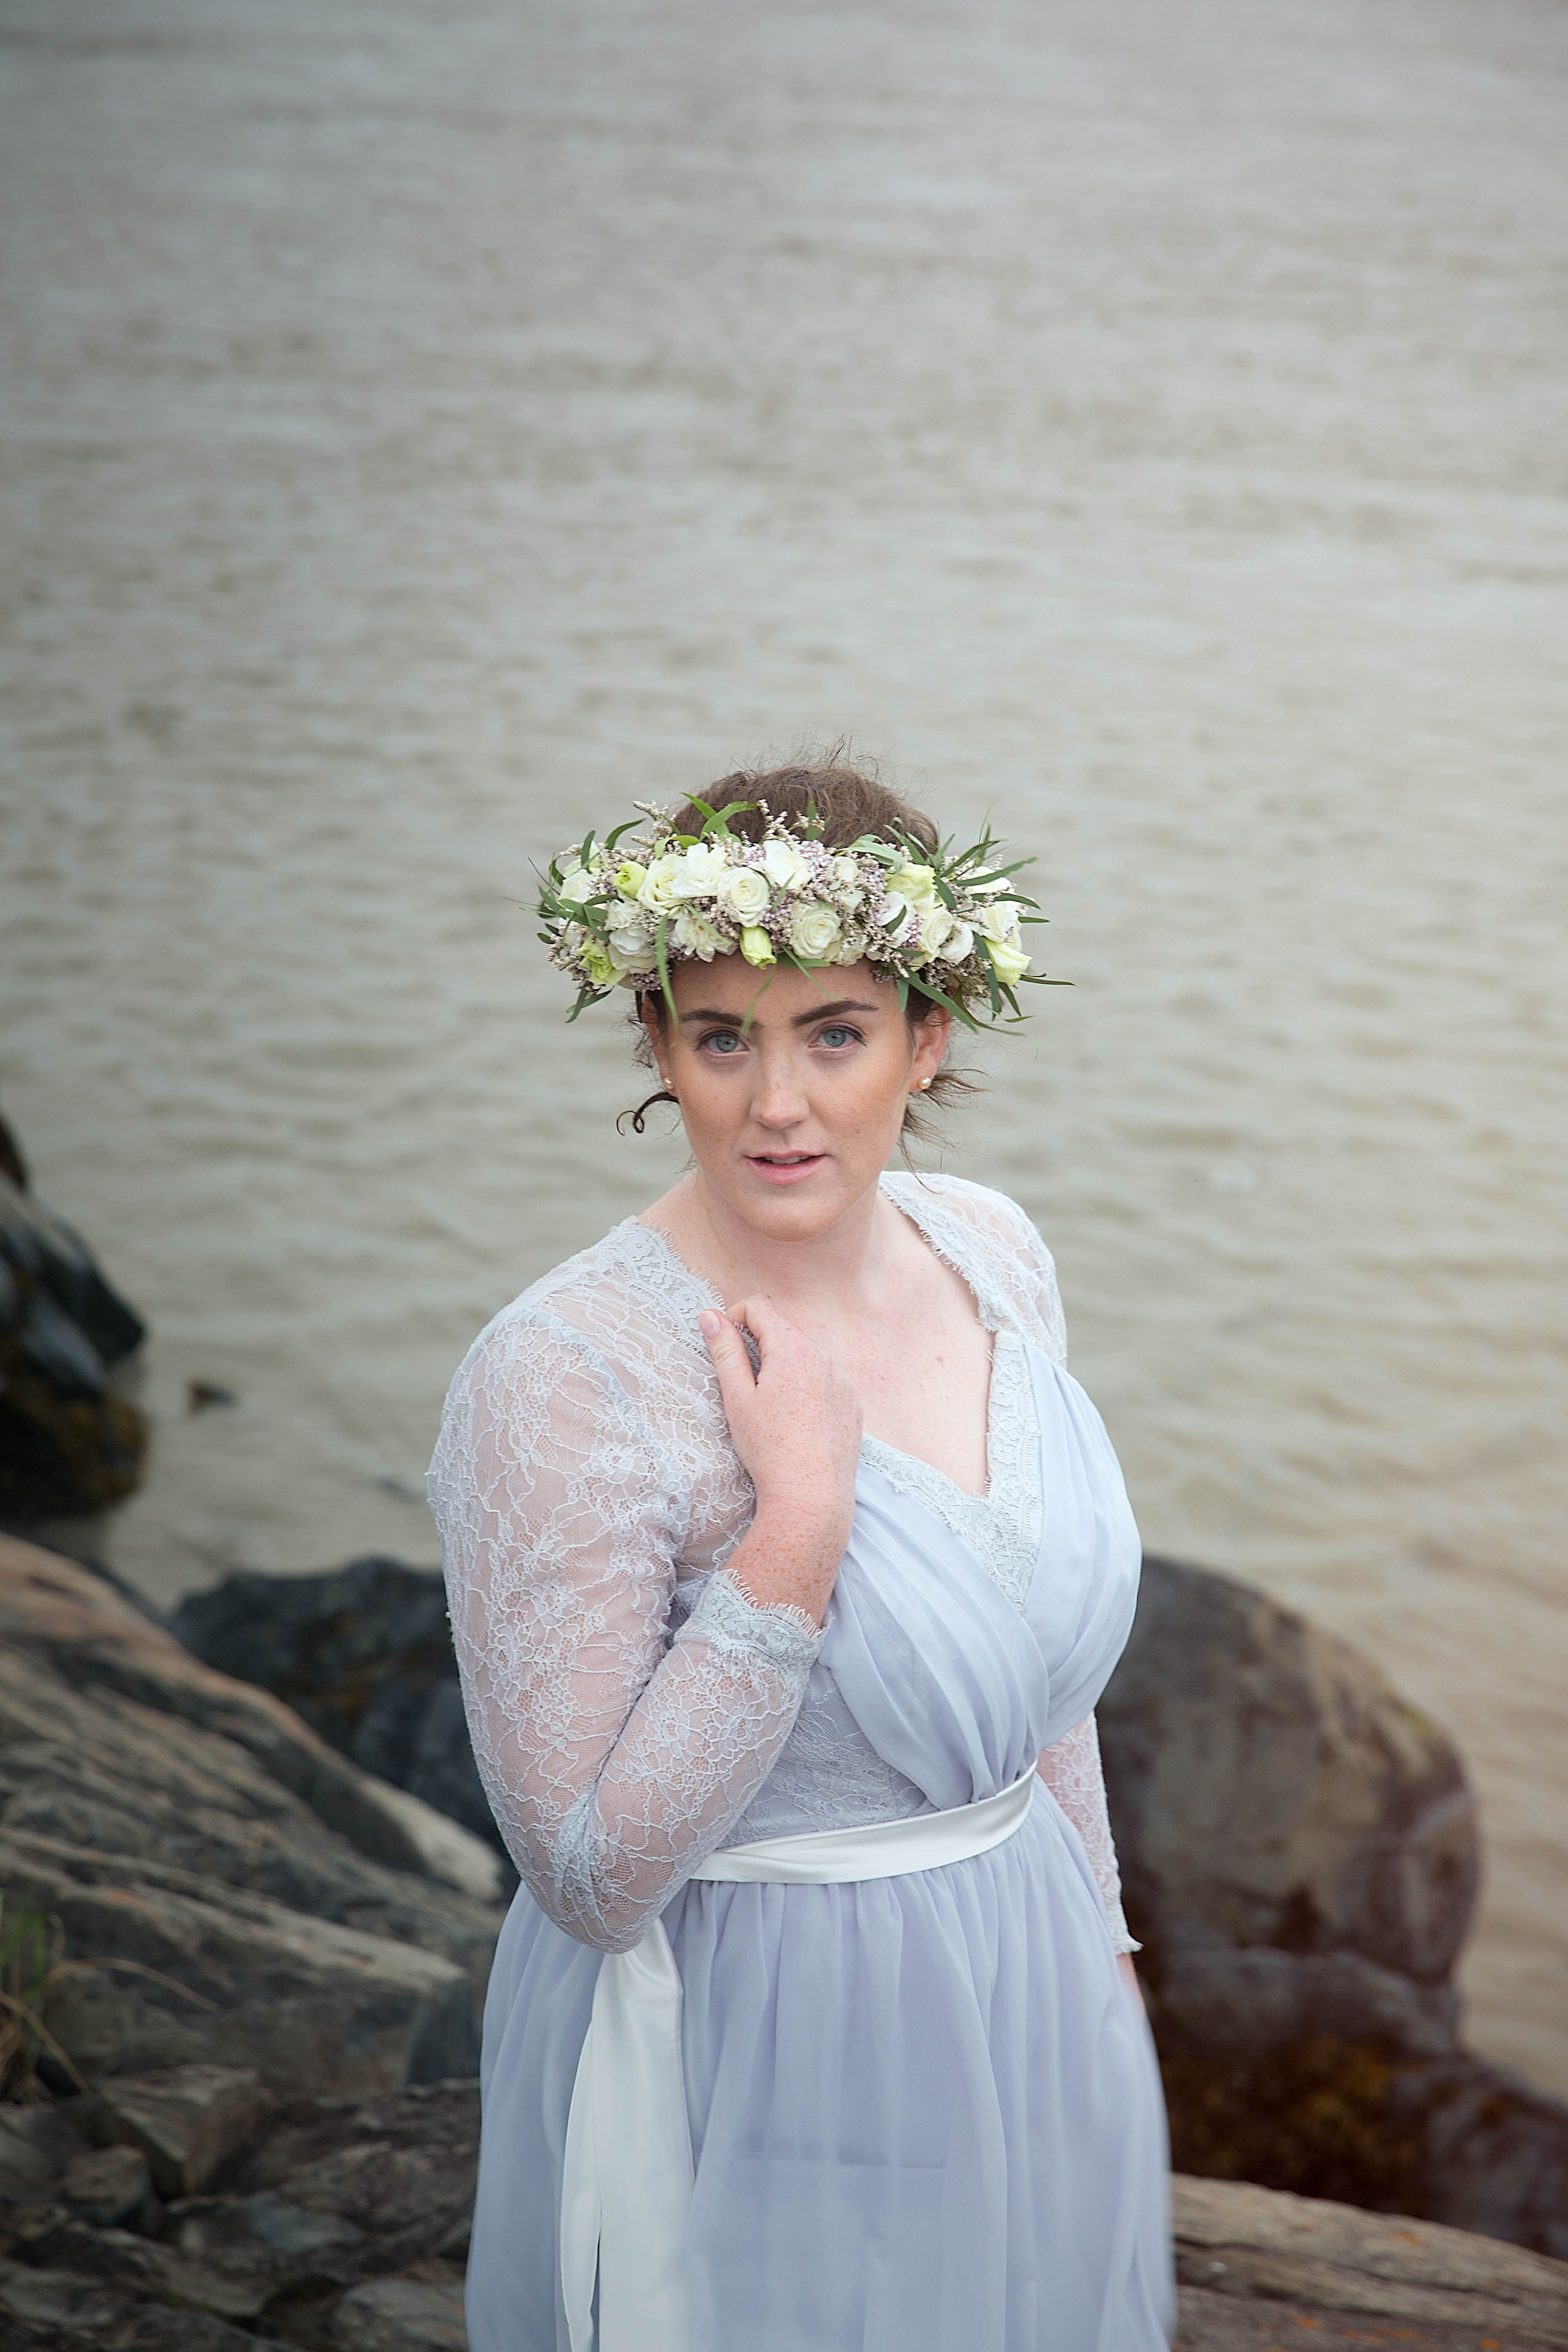 Flower Crown Made With Willow Eucalyptus And White Spray Roses